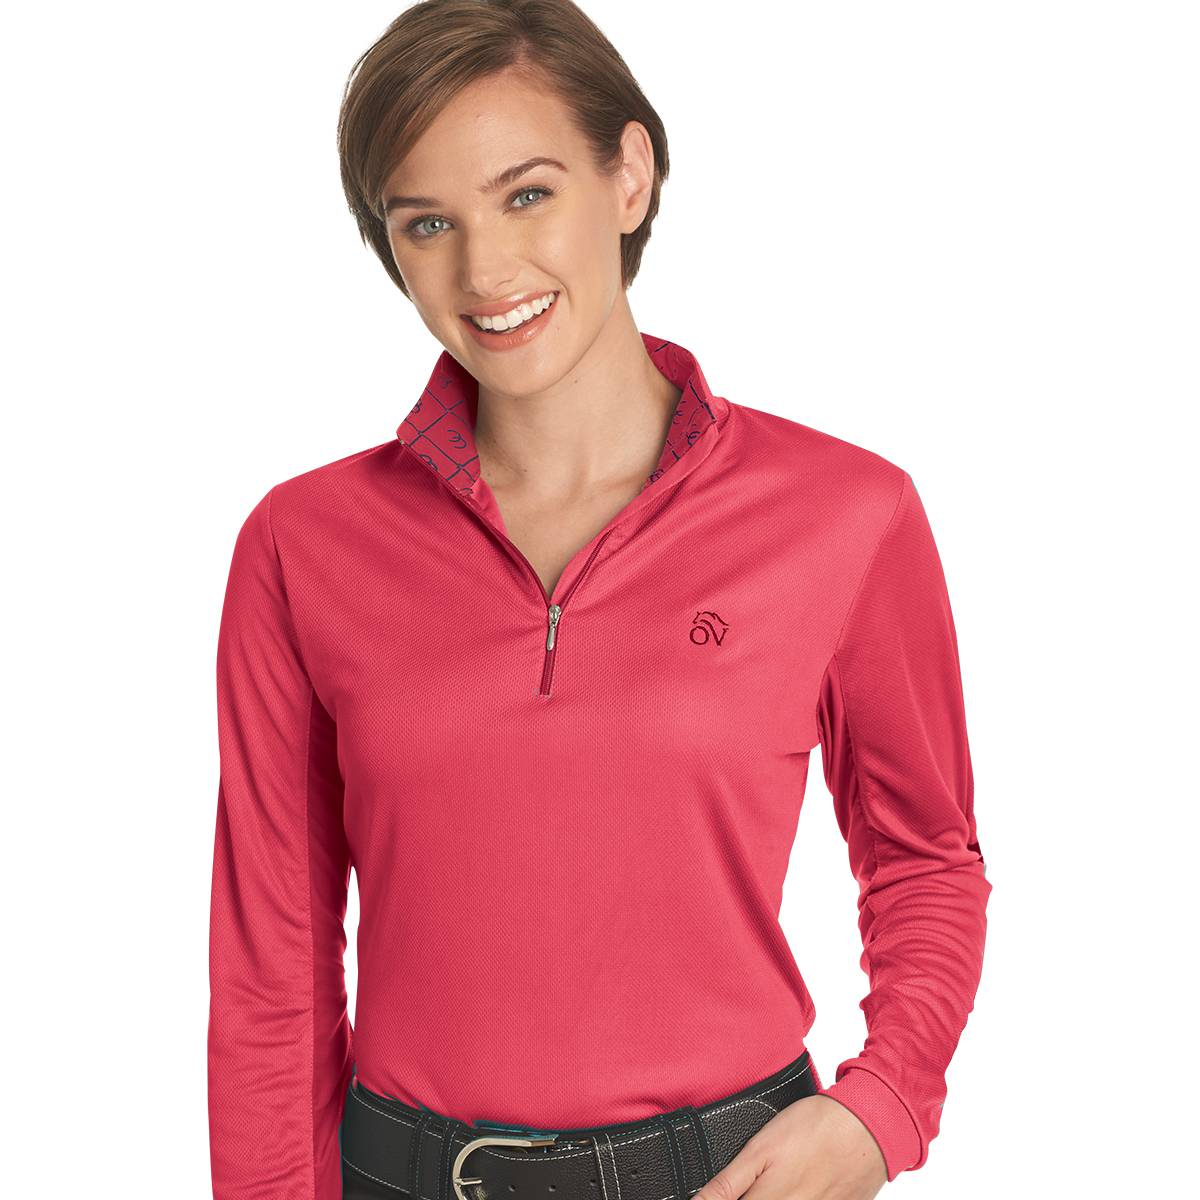 Ovation Cool Rider Tech Shirt- Ladies